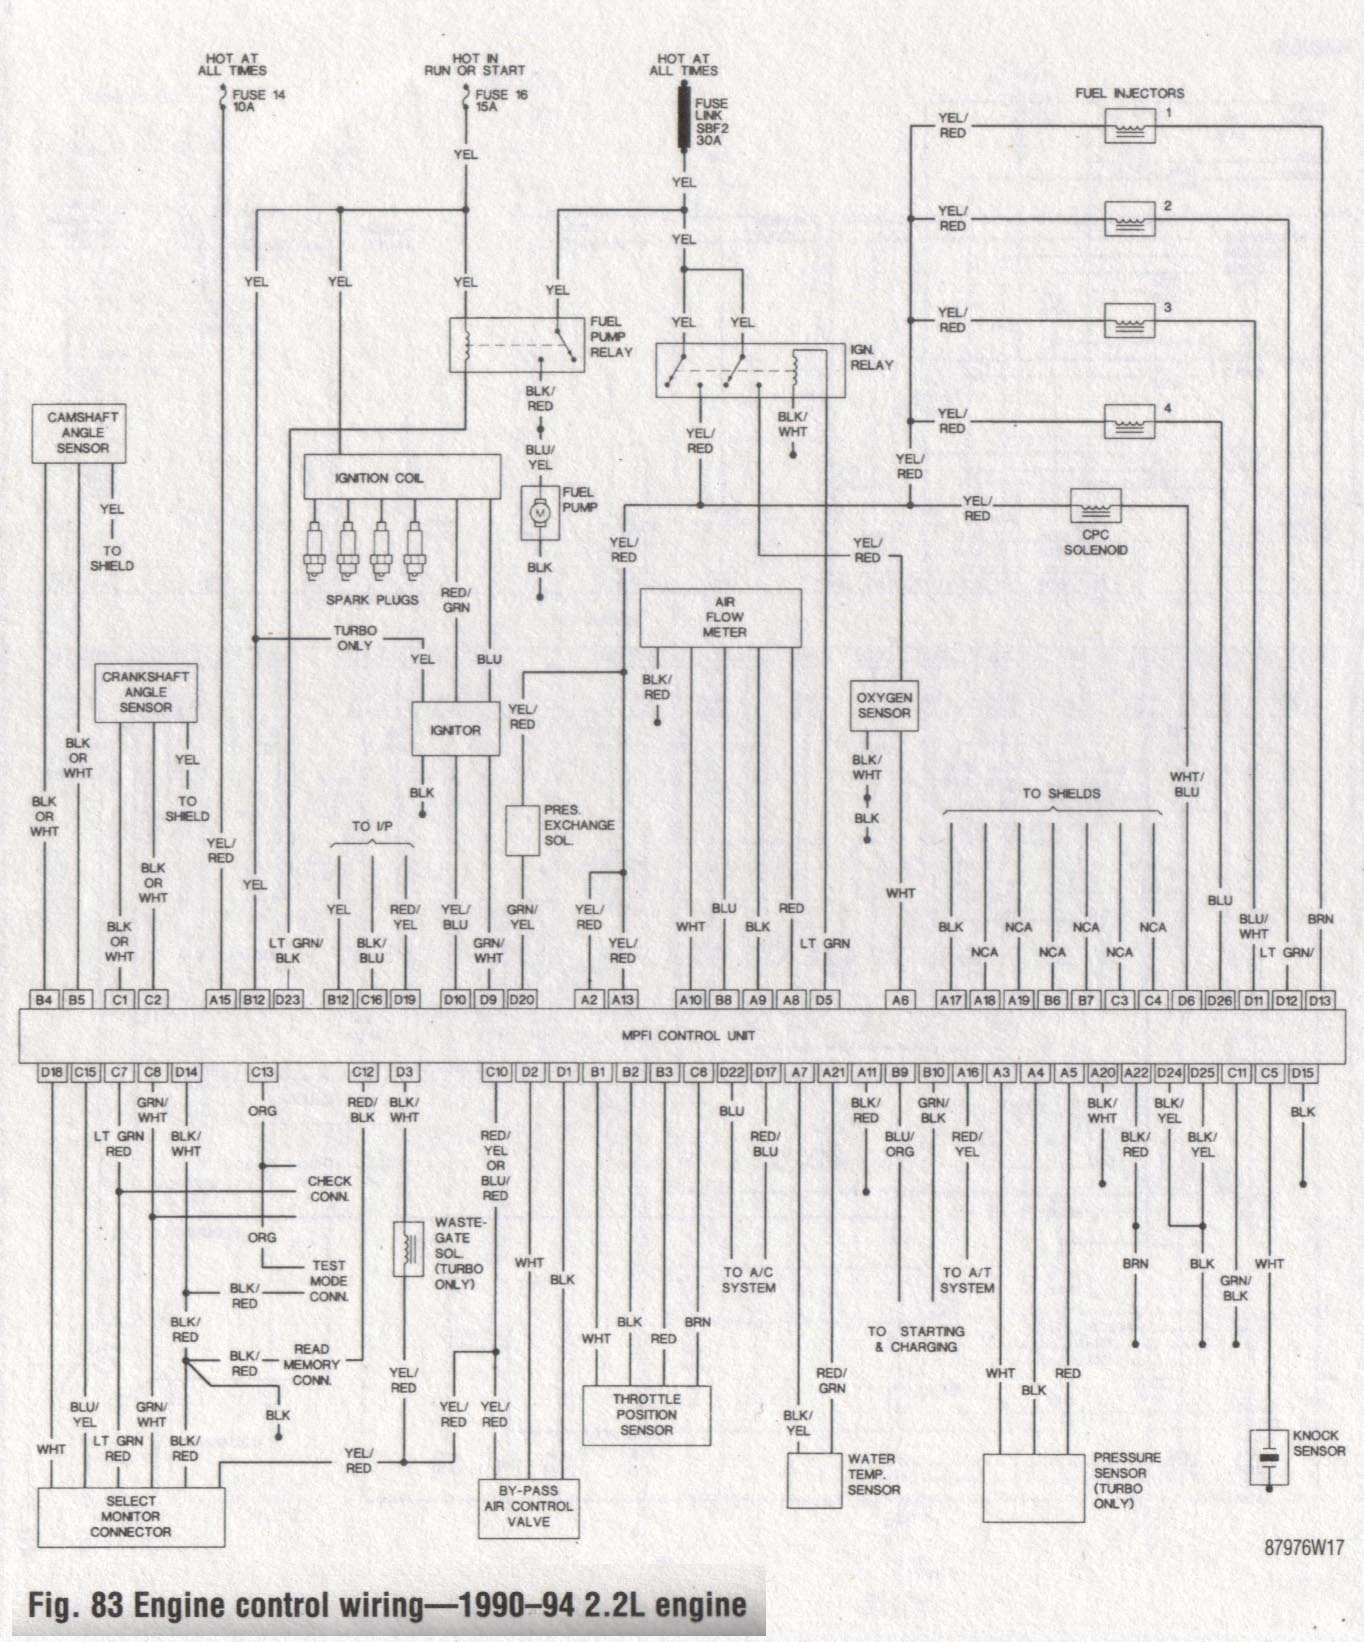 Schematic90 94Legacy vanagon restoration for the compleat idiot subaru vanagon conversion wiring diagrams at mifinder.co